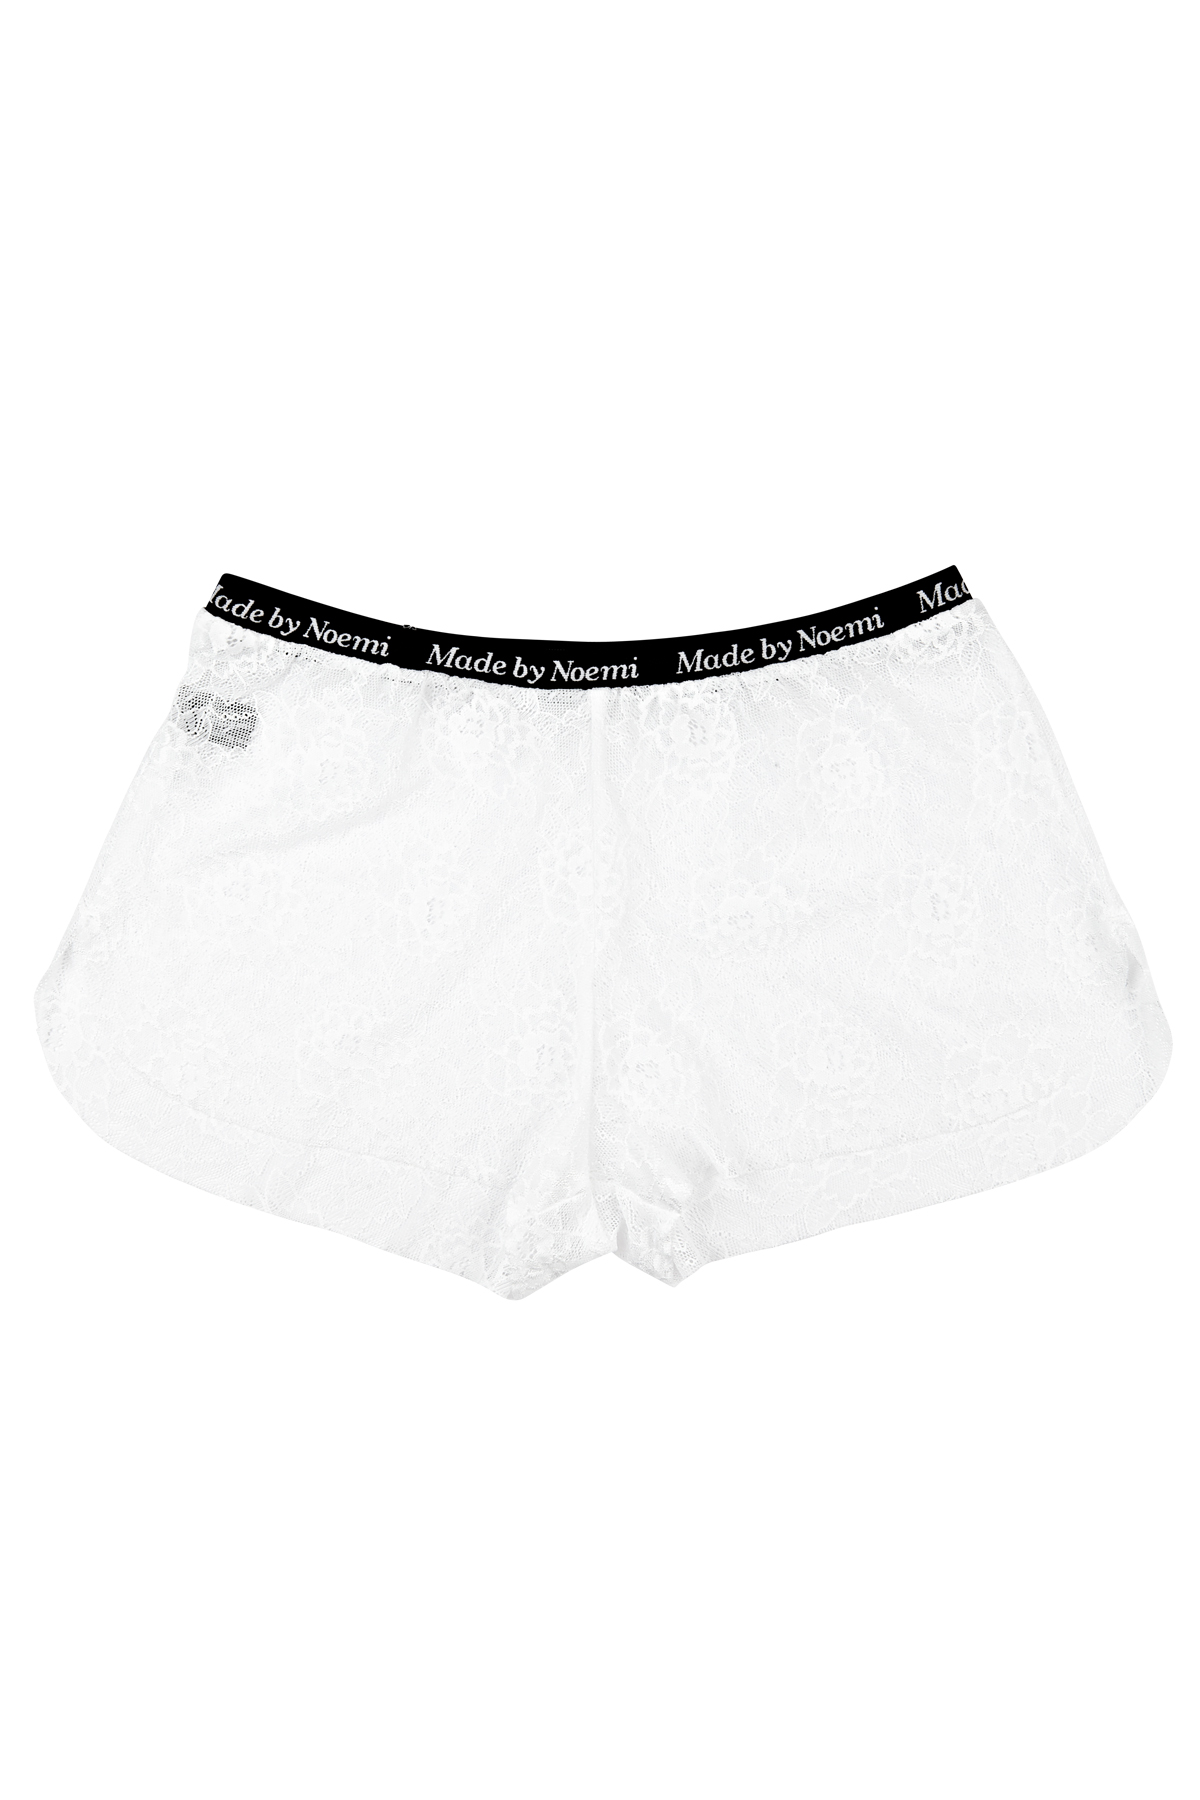 mbn_classic-line_lace_boxershorts-white_front_1200x1800